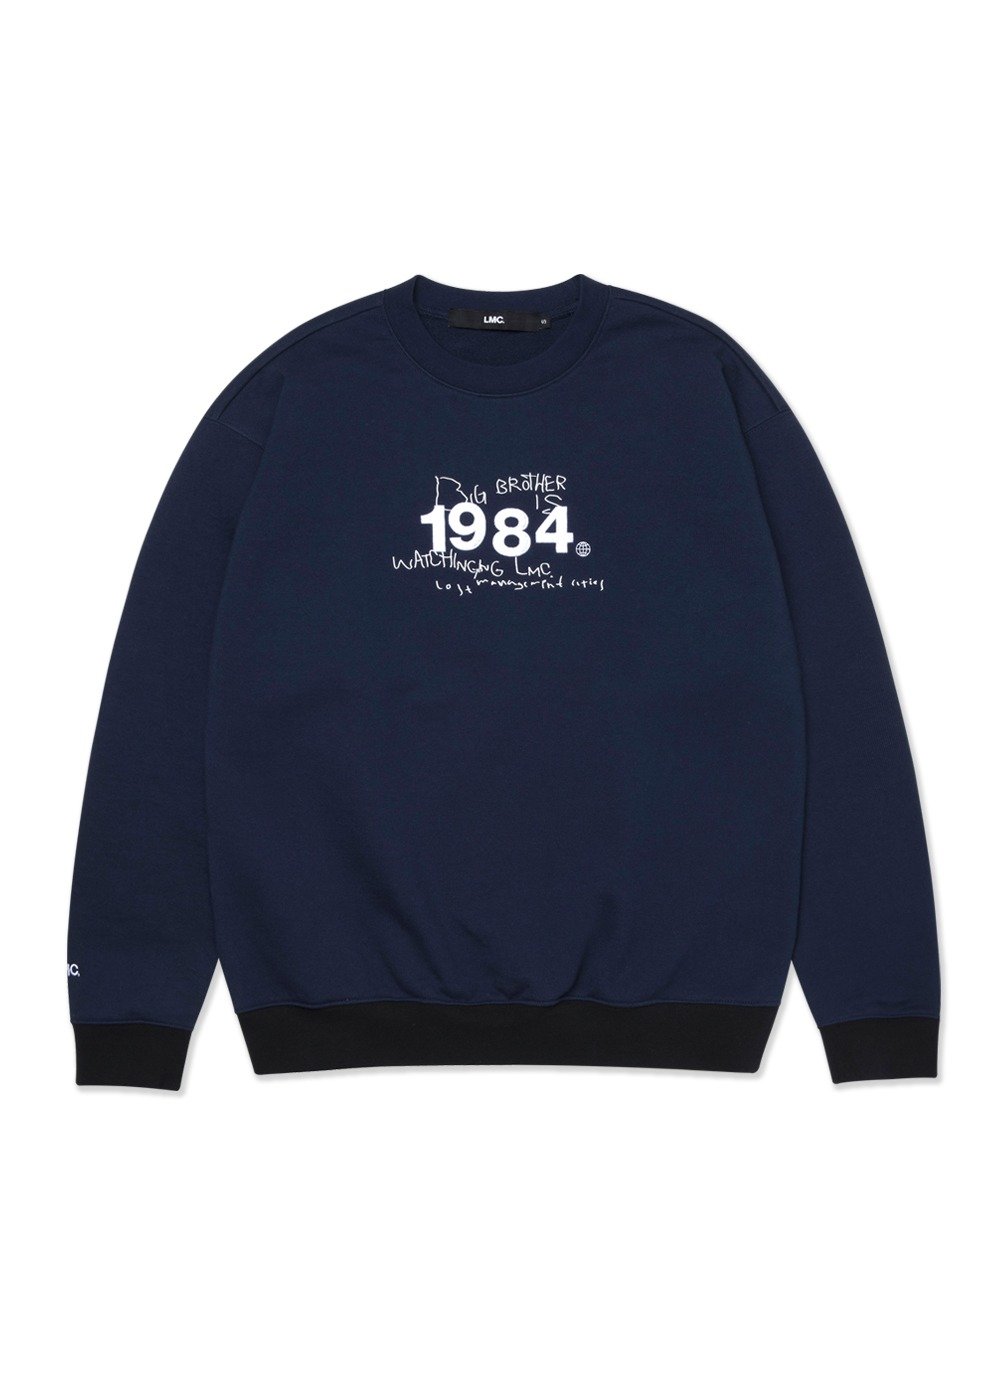 LMC 1984 SWEATSHIRT navy